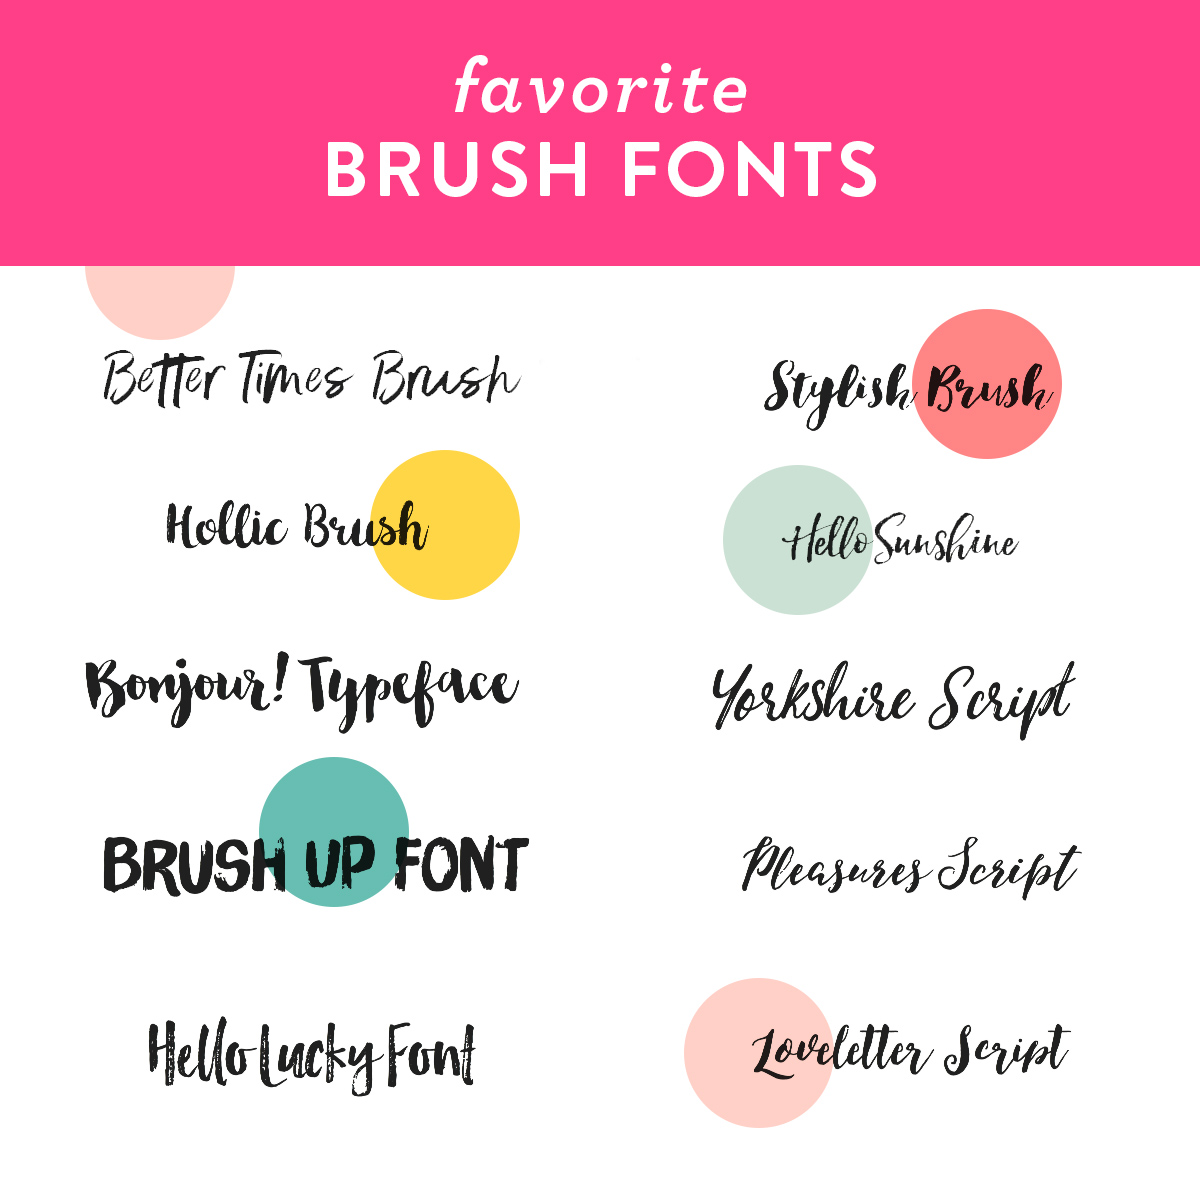 Make unique business cards, stationery, valentines and more using these beautiful brush fonts!